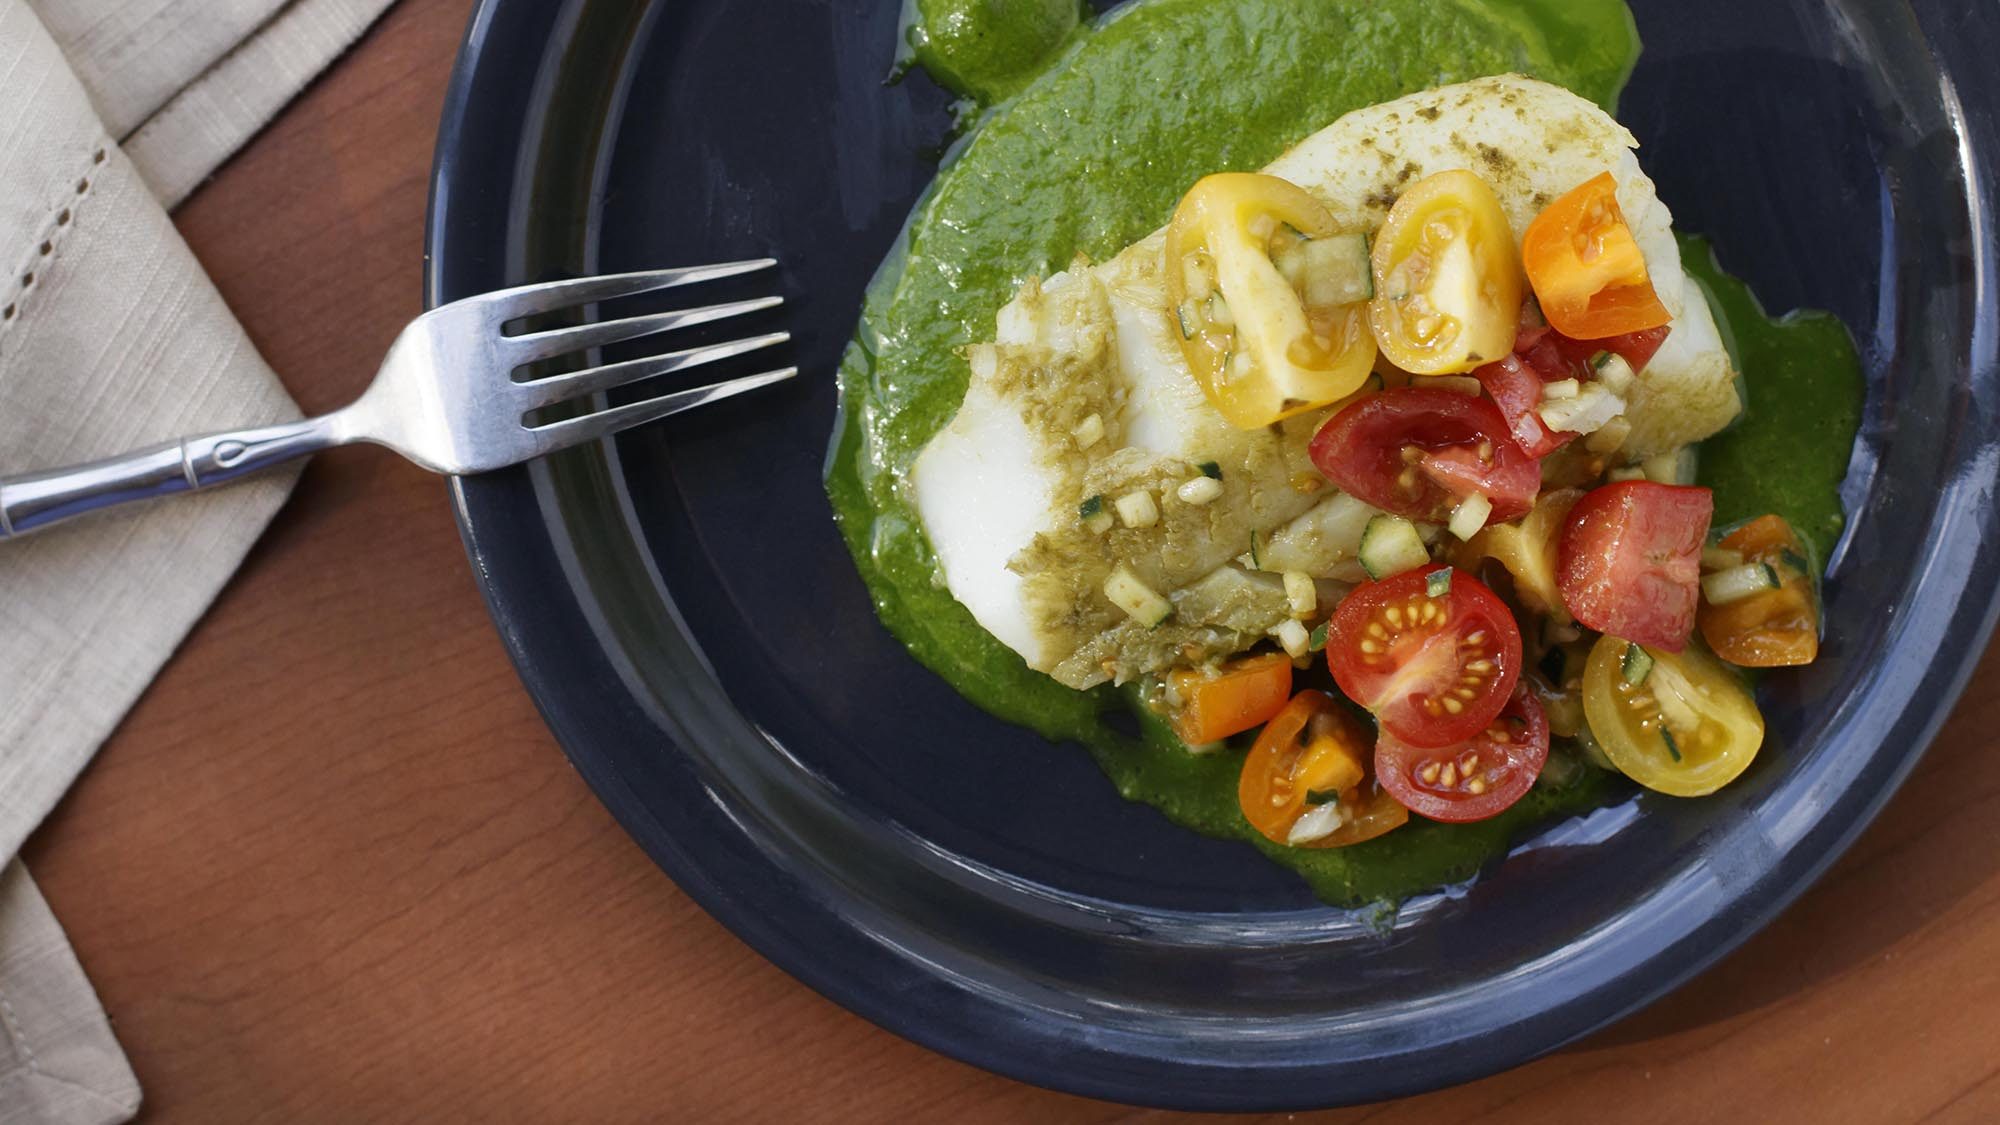 McCormick Gourmet Matcha Baked Cod with Spinach Pesto and Tomato Salad